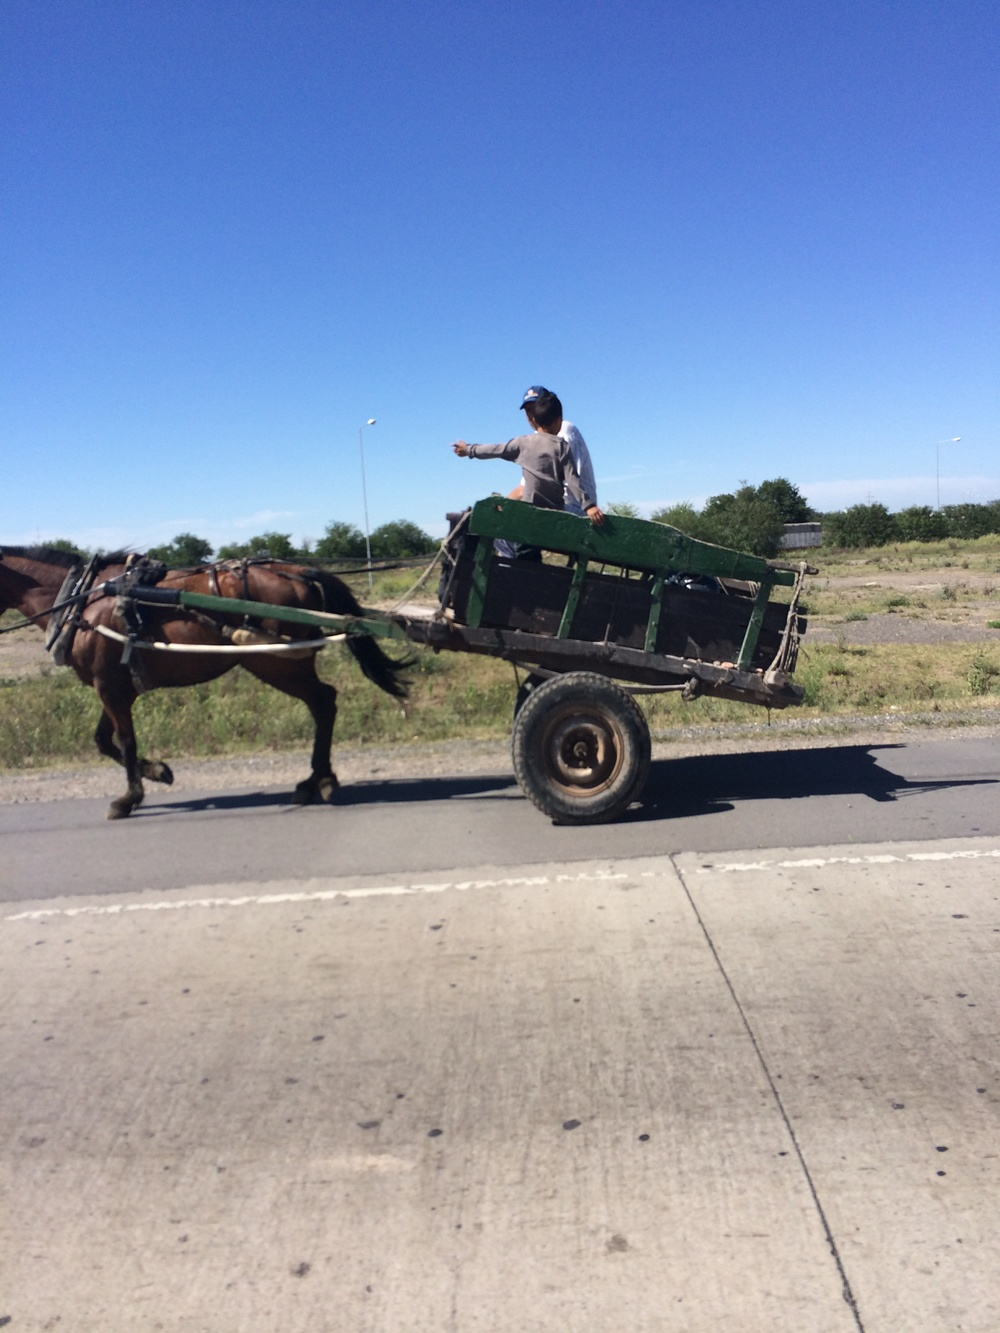 A vintage ride in rural farm country